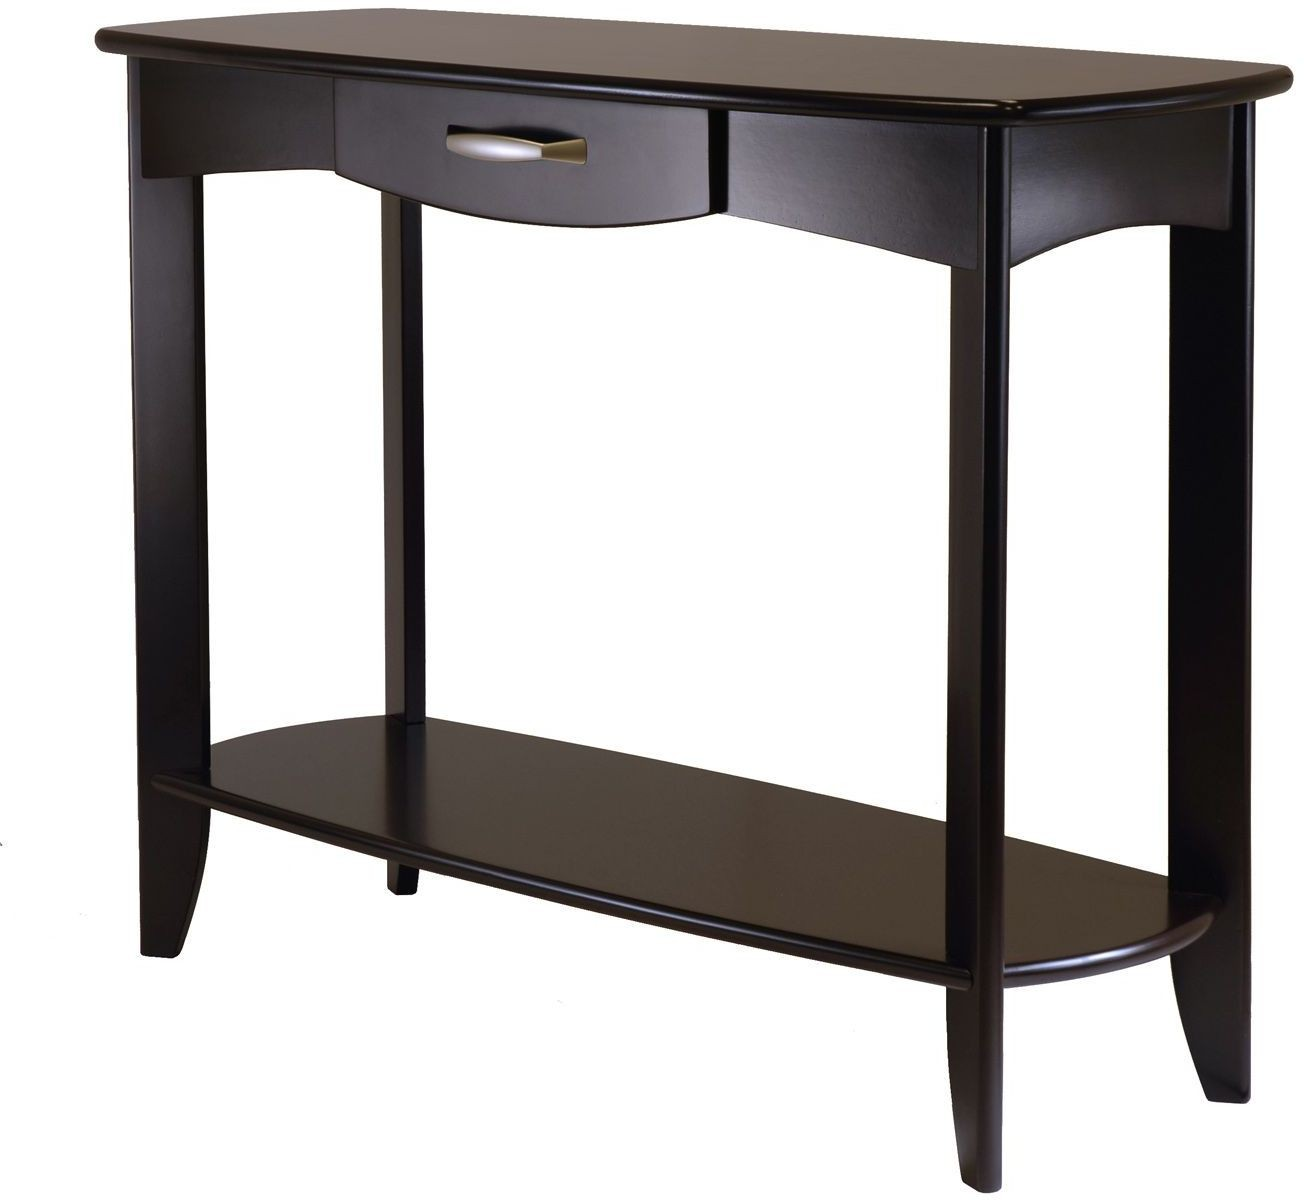 espresso console table long danica dark from winsomewood threshold owings accent metal end tablecloth pier cushions patio side with umbrella hole glass tables toronto small